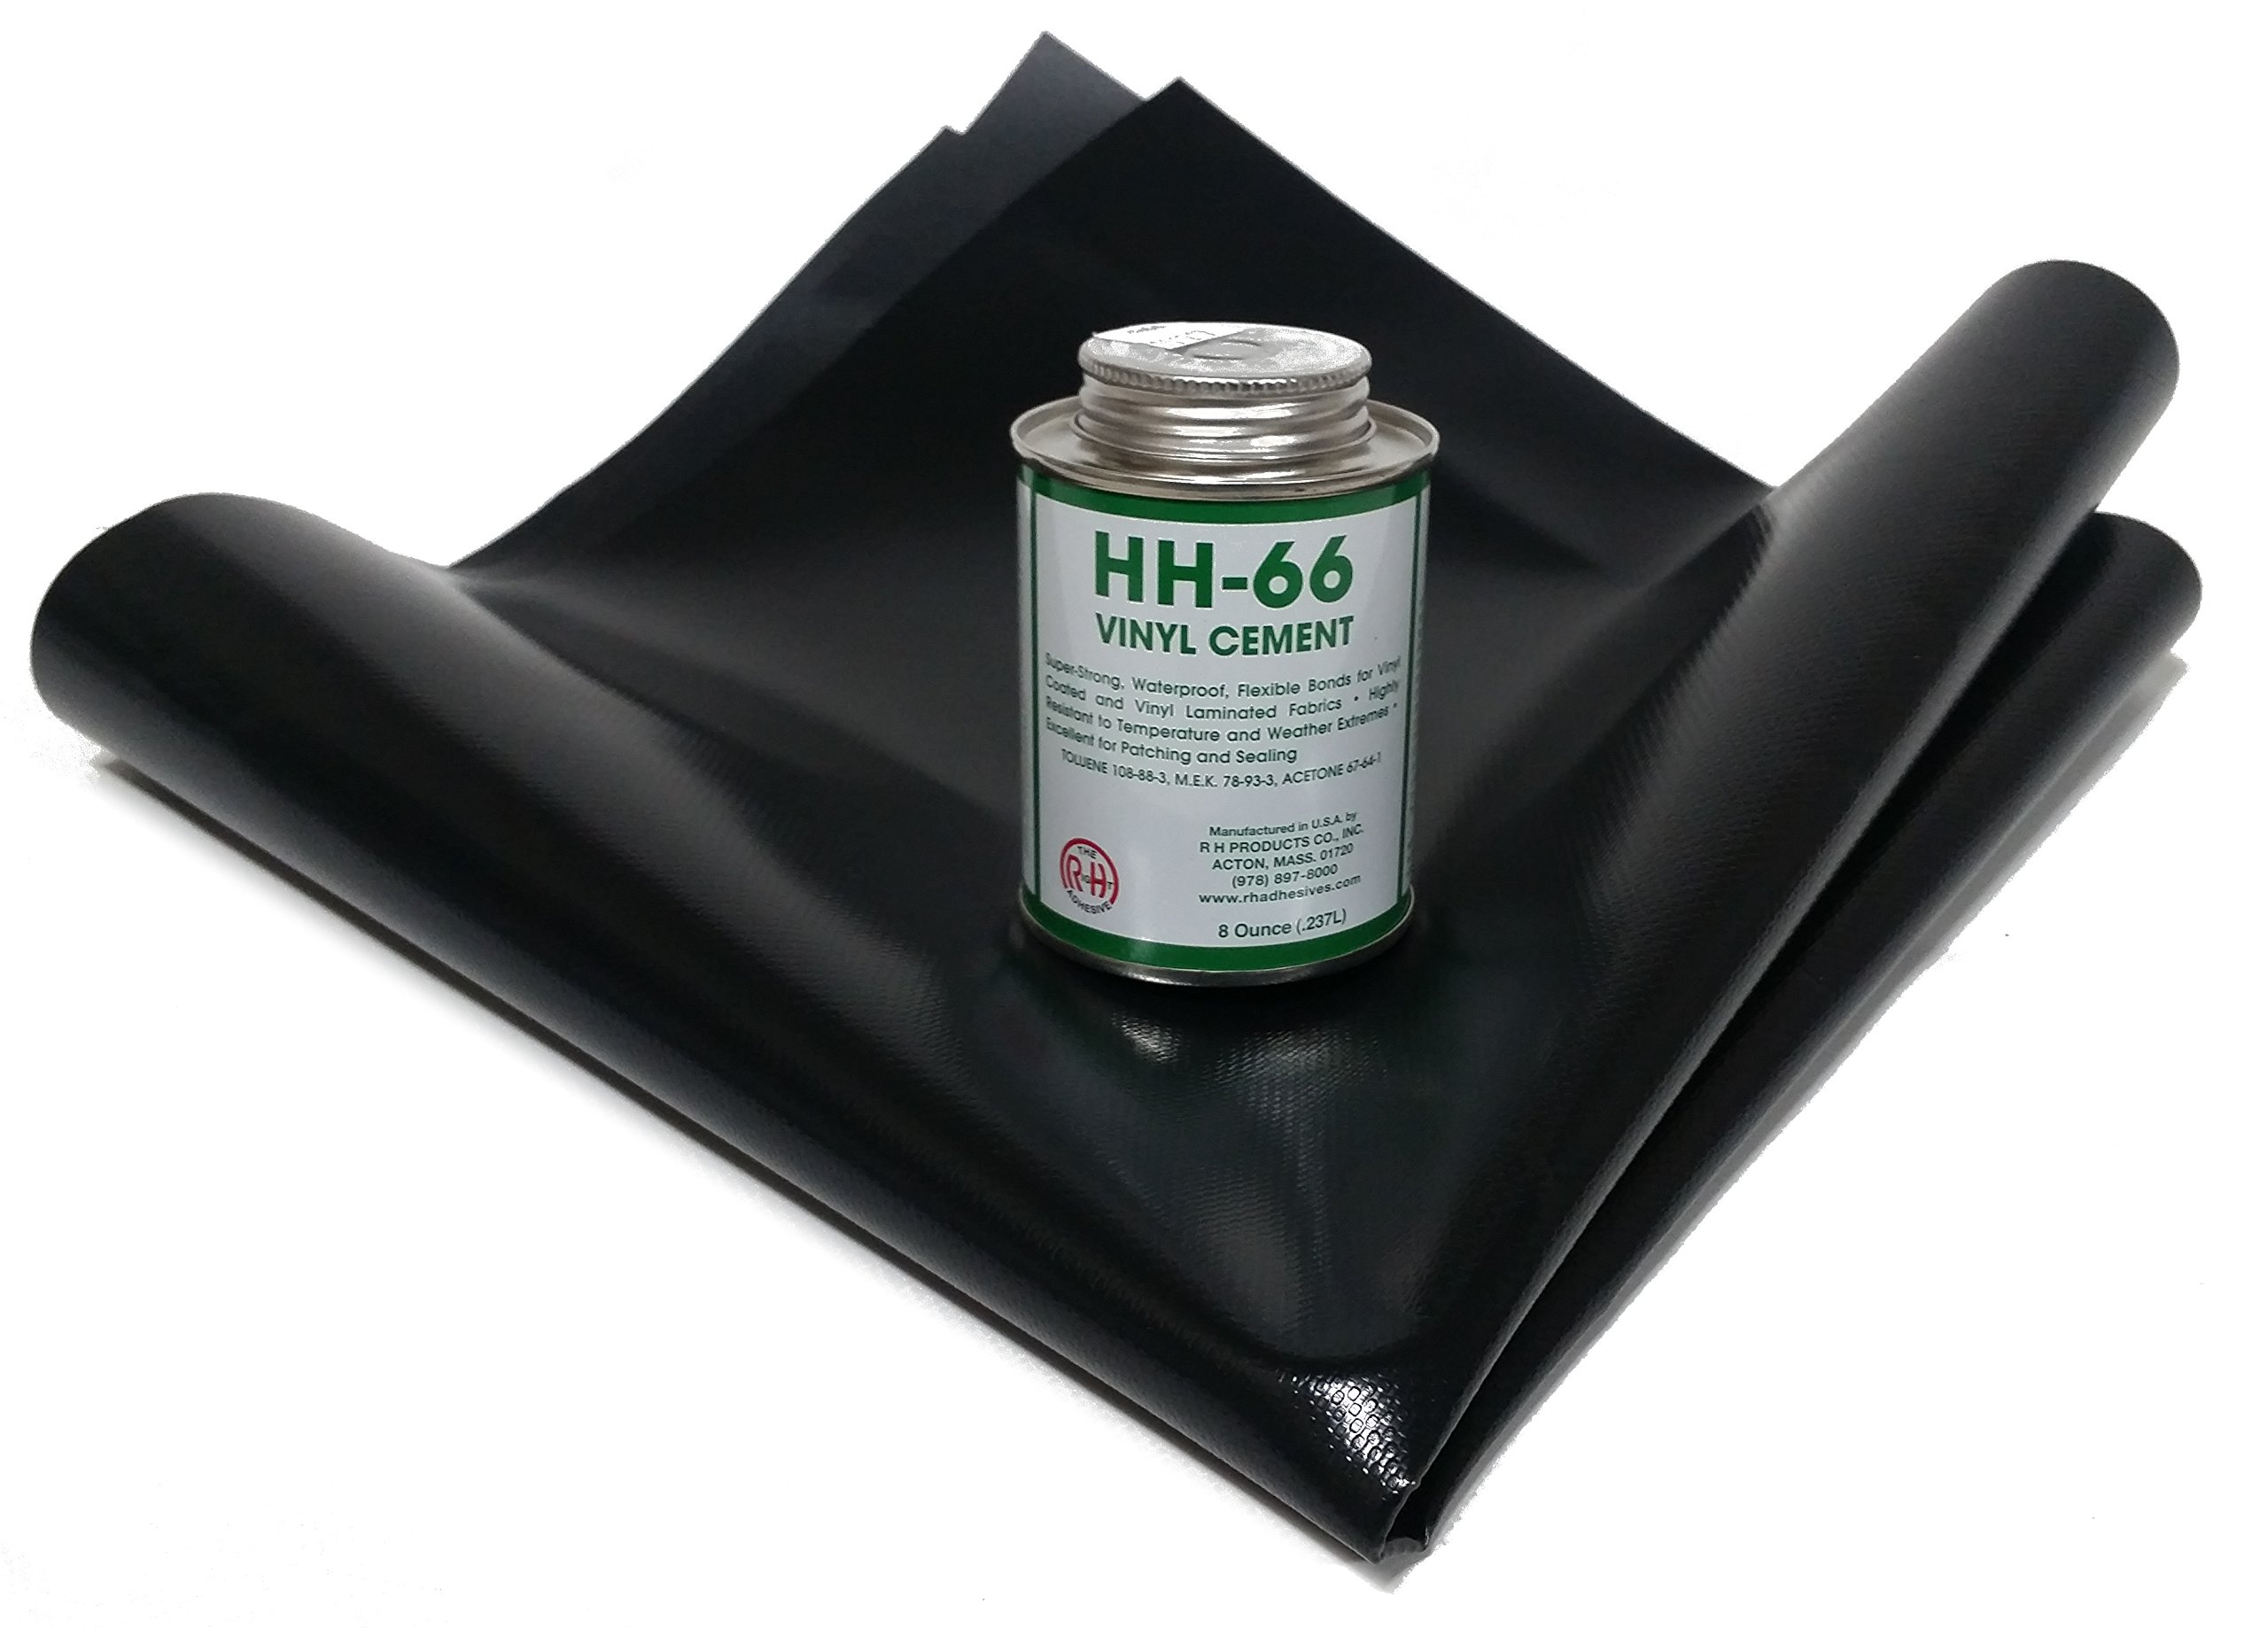 Tarp Repair Kit: 2'x2' 18oz Vinyl Patch and HH-66 Vinyl Cement (Black) by Tarp Nation